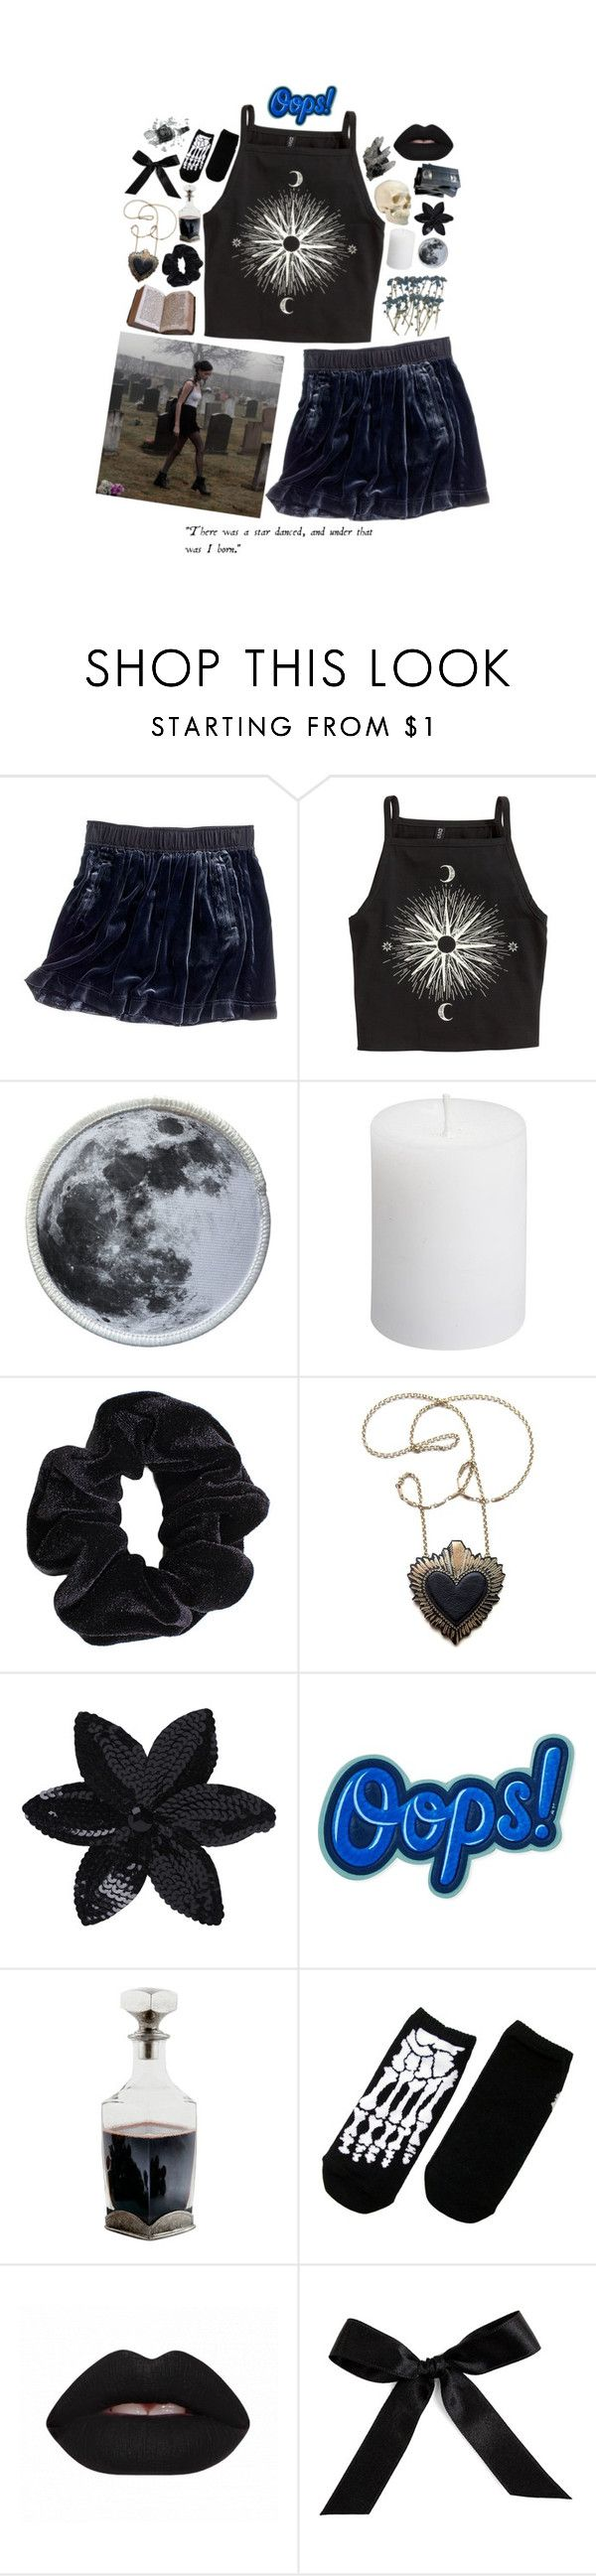 """""""drinking by the mausoleum door"""" by ghostclub ❤ liked on Polyvore featuring Madewell, H&M, American Apparel, Rosita Bonita, ASOS, Anya Hindmarch, Peek and Bocage"""